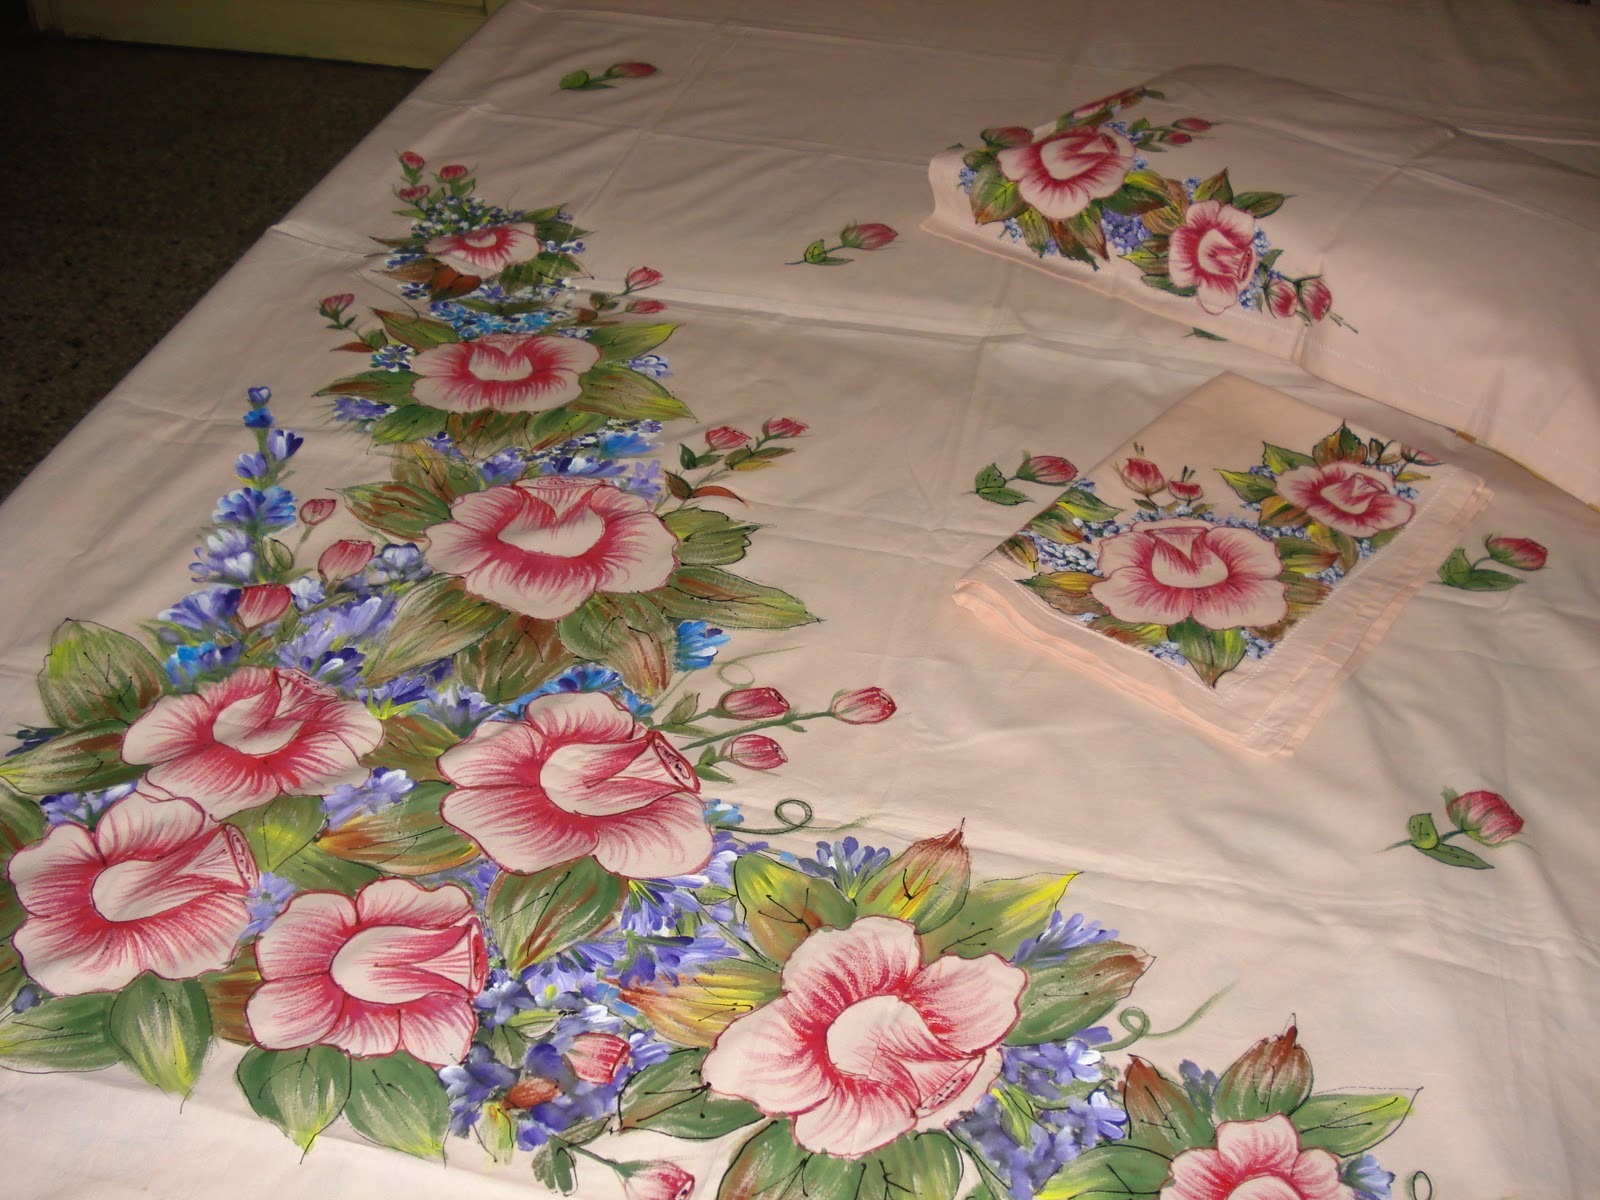 Bed Sheets Designs Fabric Painting Rose Petals Free Hand Design On